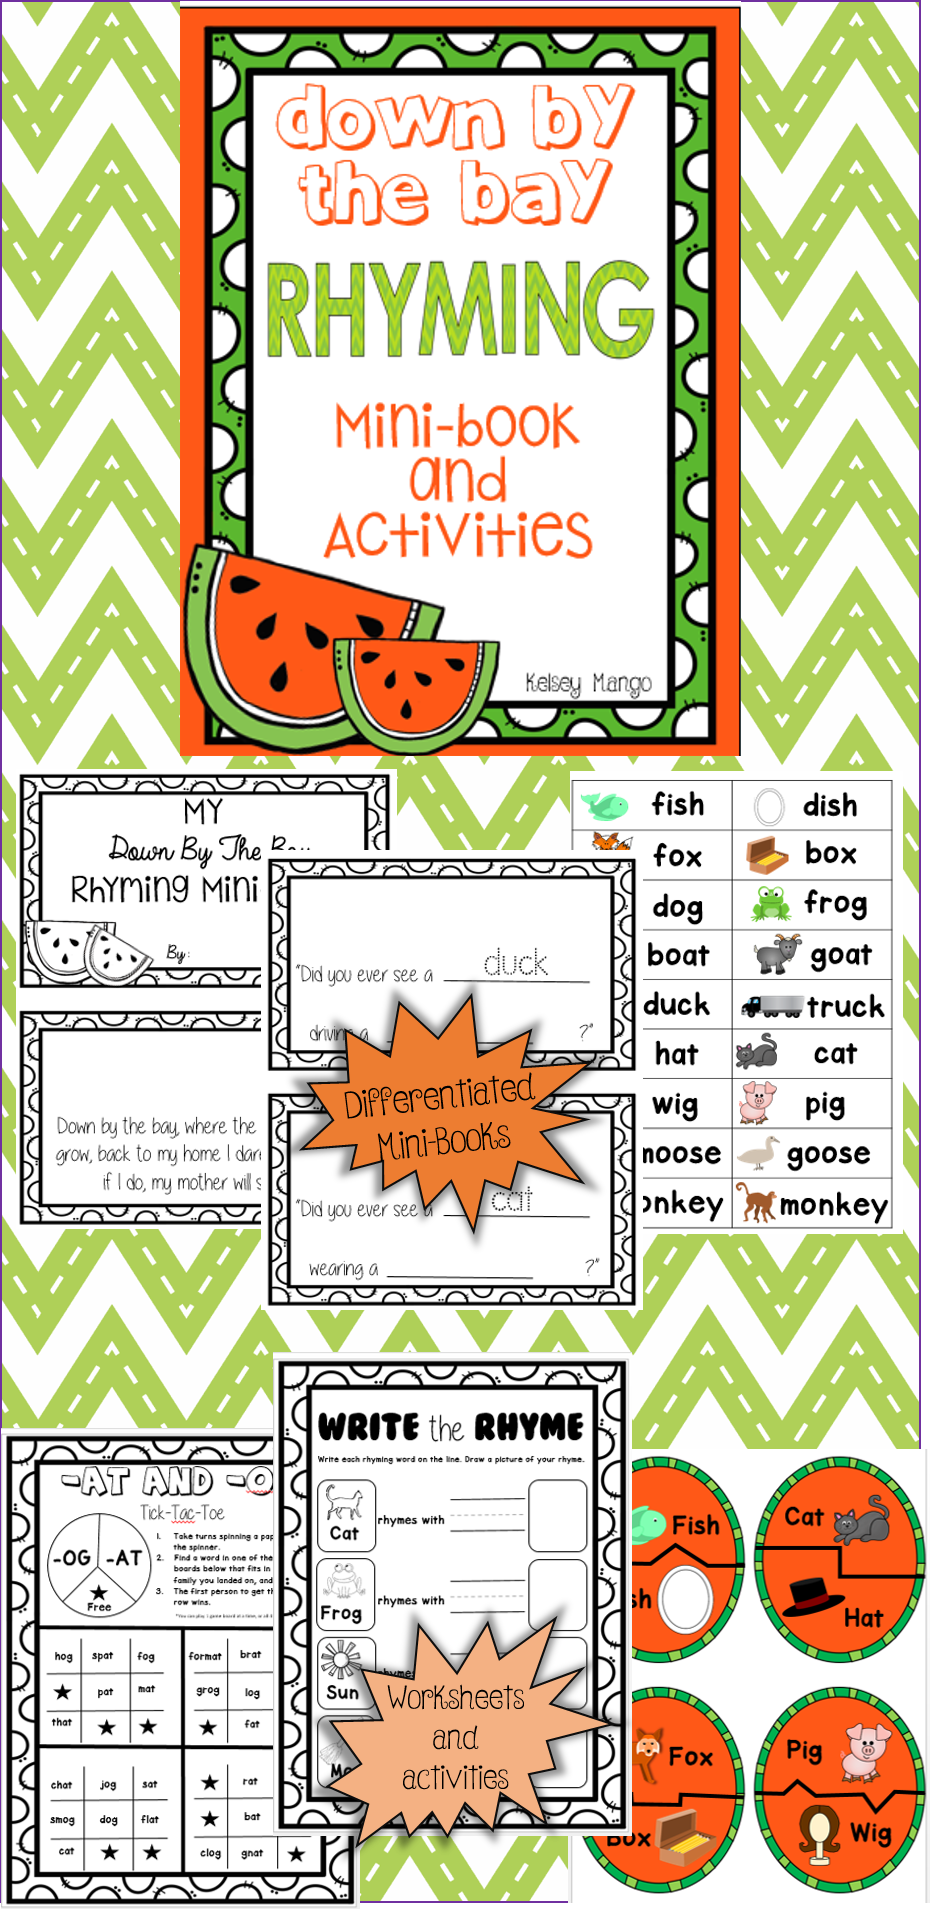 "A fun rhyming document that goes along with the well-known song ""Down By the Bay"". Included is a differentiated mini-book, printable worksheets, and a puzzle great for a center. https://www.teacherspayteachers.com/Product/Down-By-The-Bay-Rhyming-Mini-Book-and-Activities-2091118"